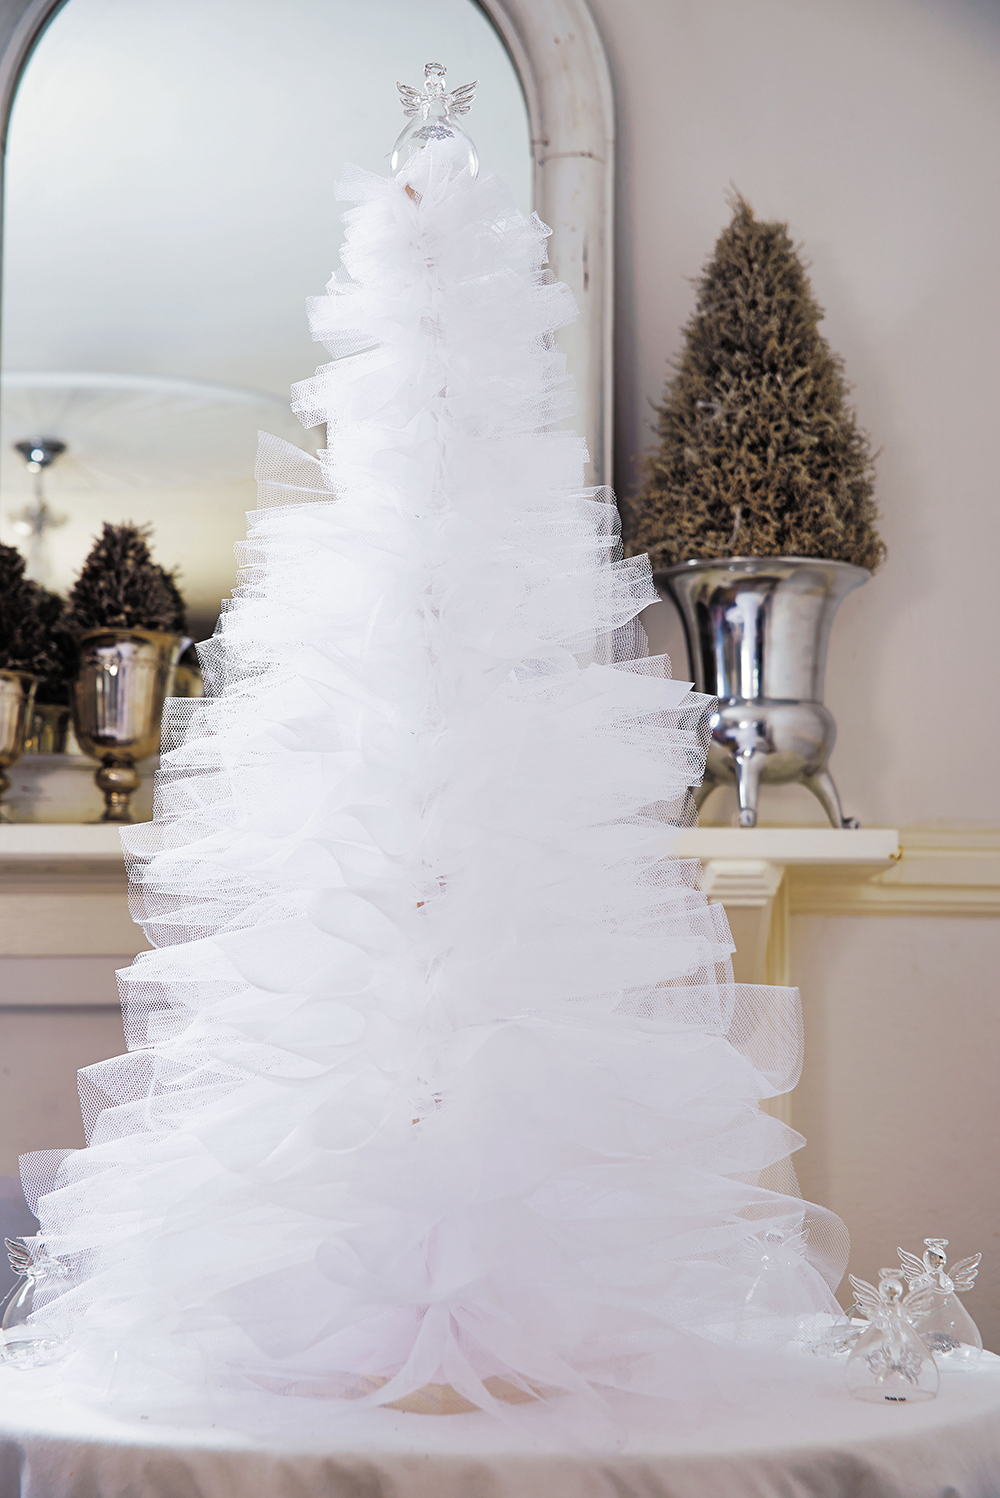 30 Diy Christmas Tree Ideas To Go A Little Unconventional This Year Page 2 Of 2 Cute Diy Projects